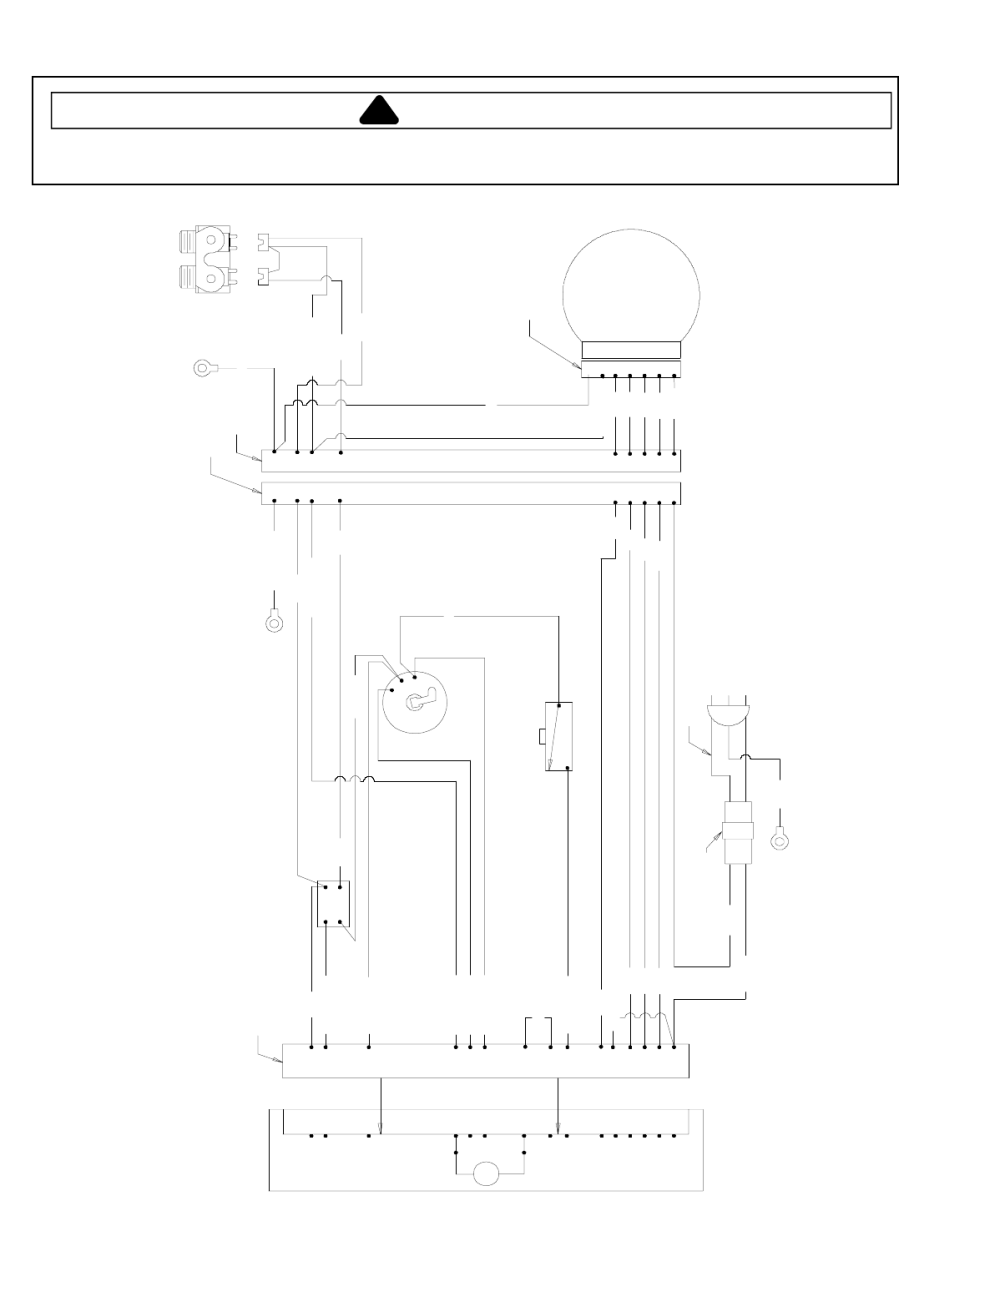 medium resolution of l6 20r wiring diagram database6 20r wiring diagram database 6 20r receptacle wiring l6 20r